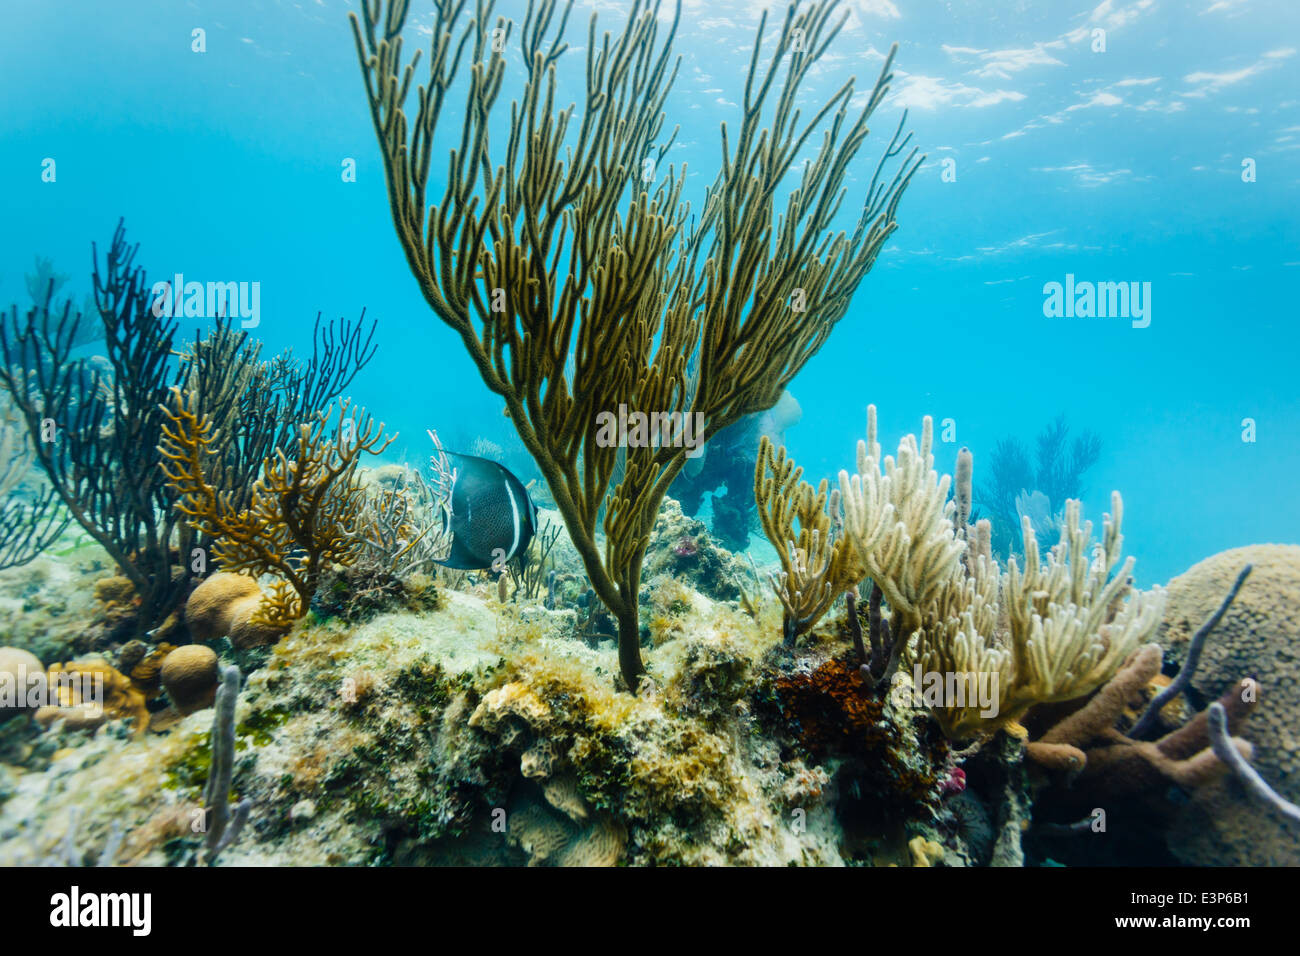 Underwater close up view of marine life and coral formations on Coral reef off eastern coast of Belize - Stock Image